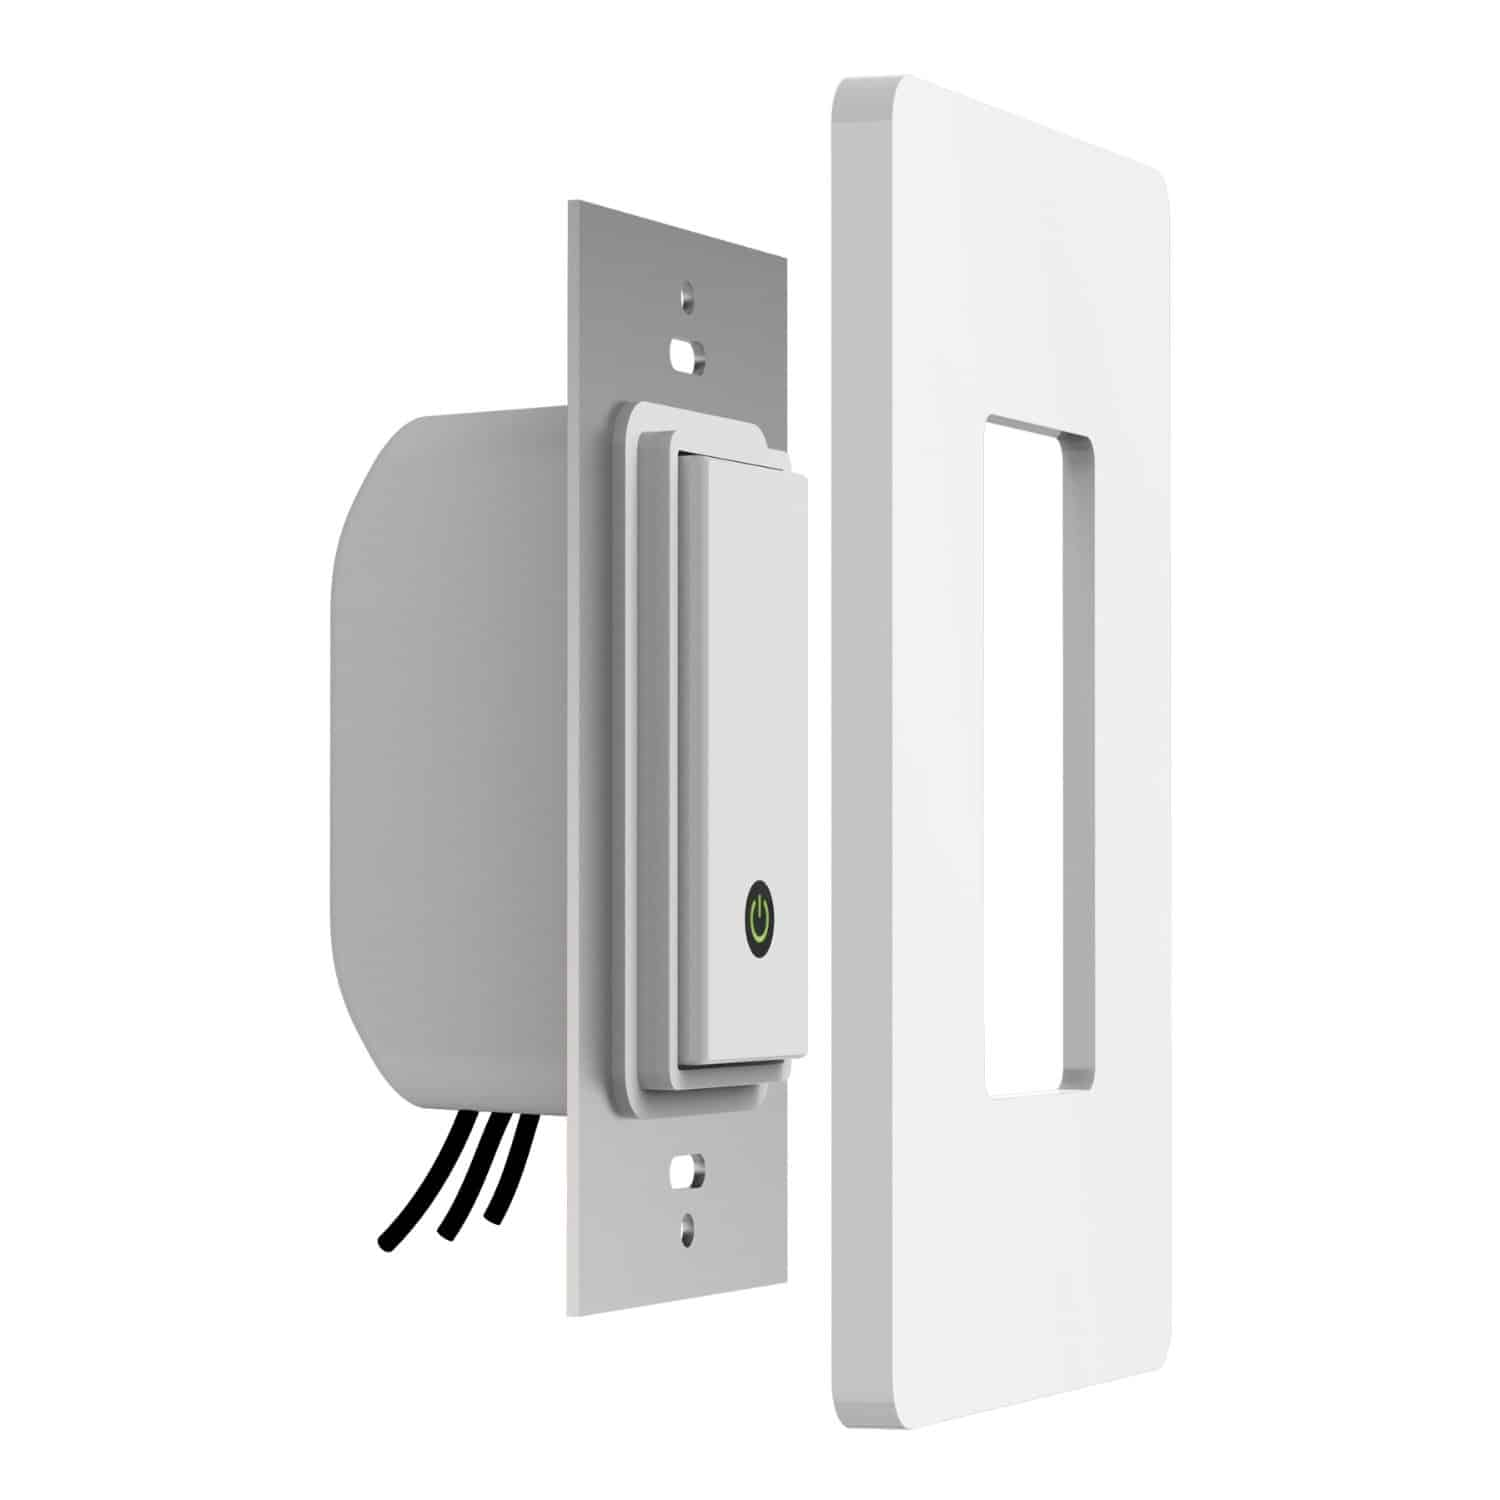 WeMo Light Switch Reviews and Deals